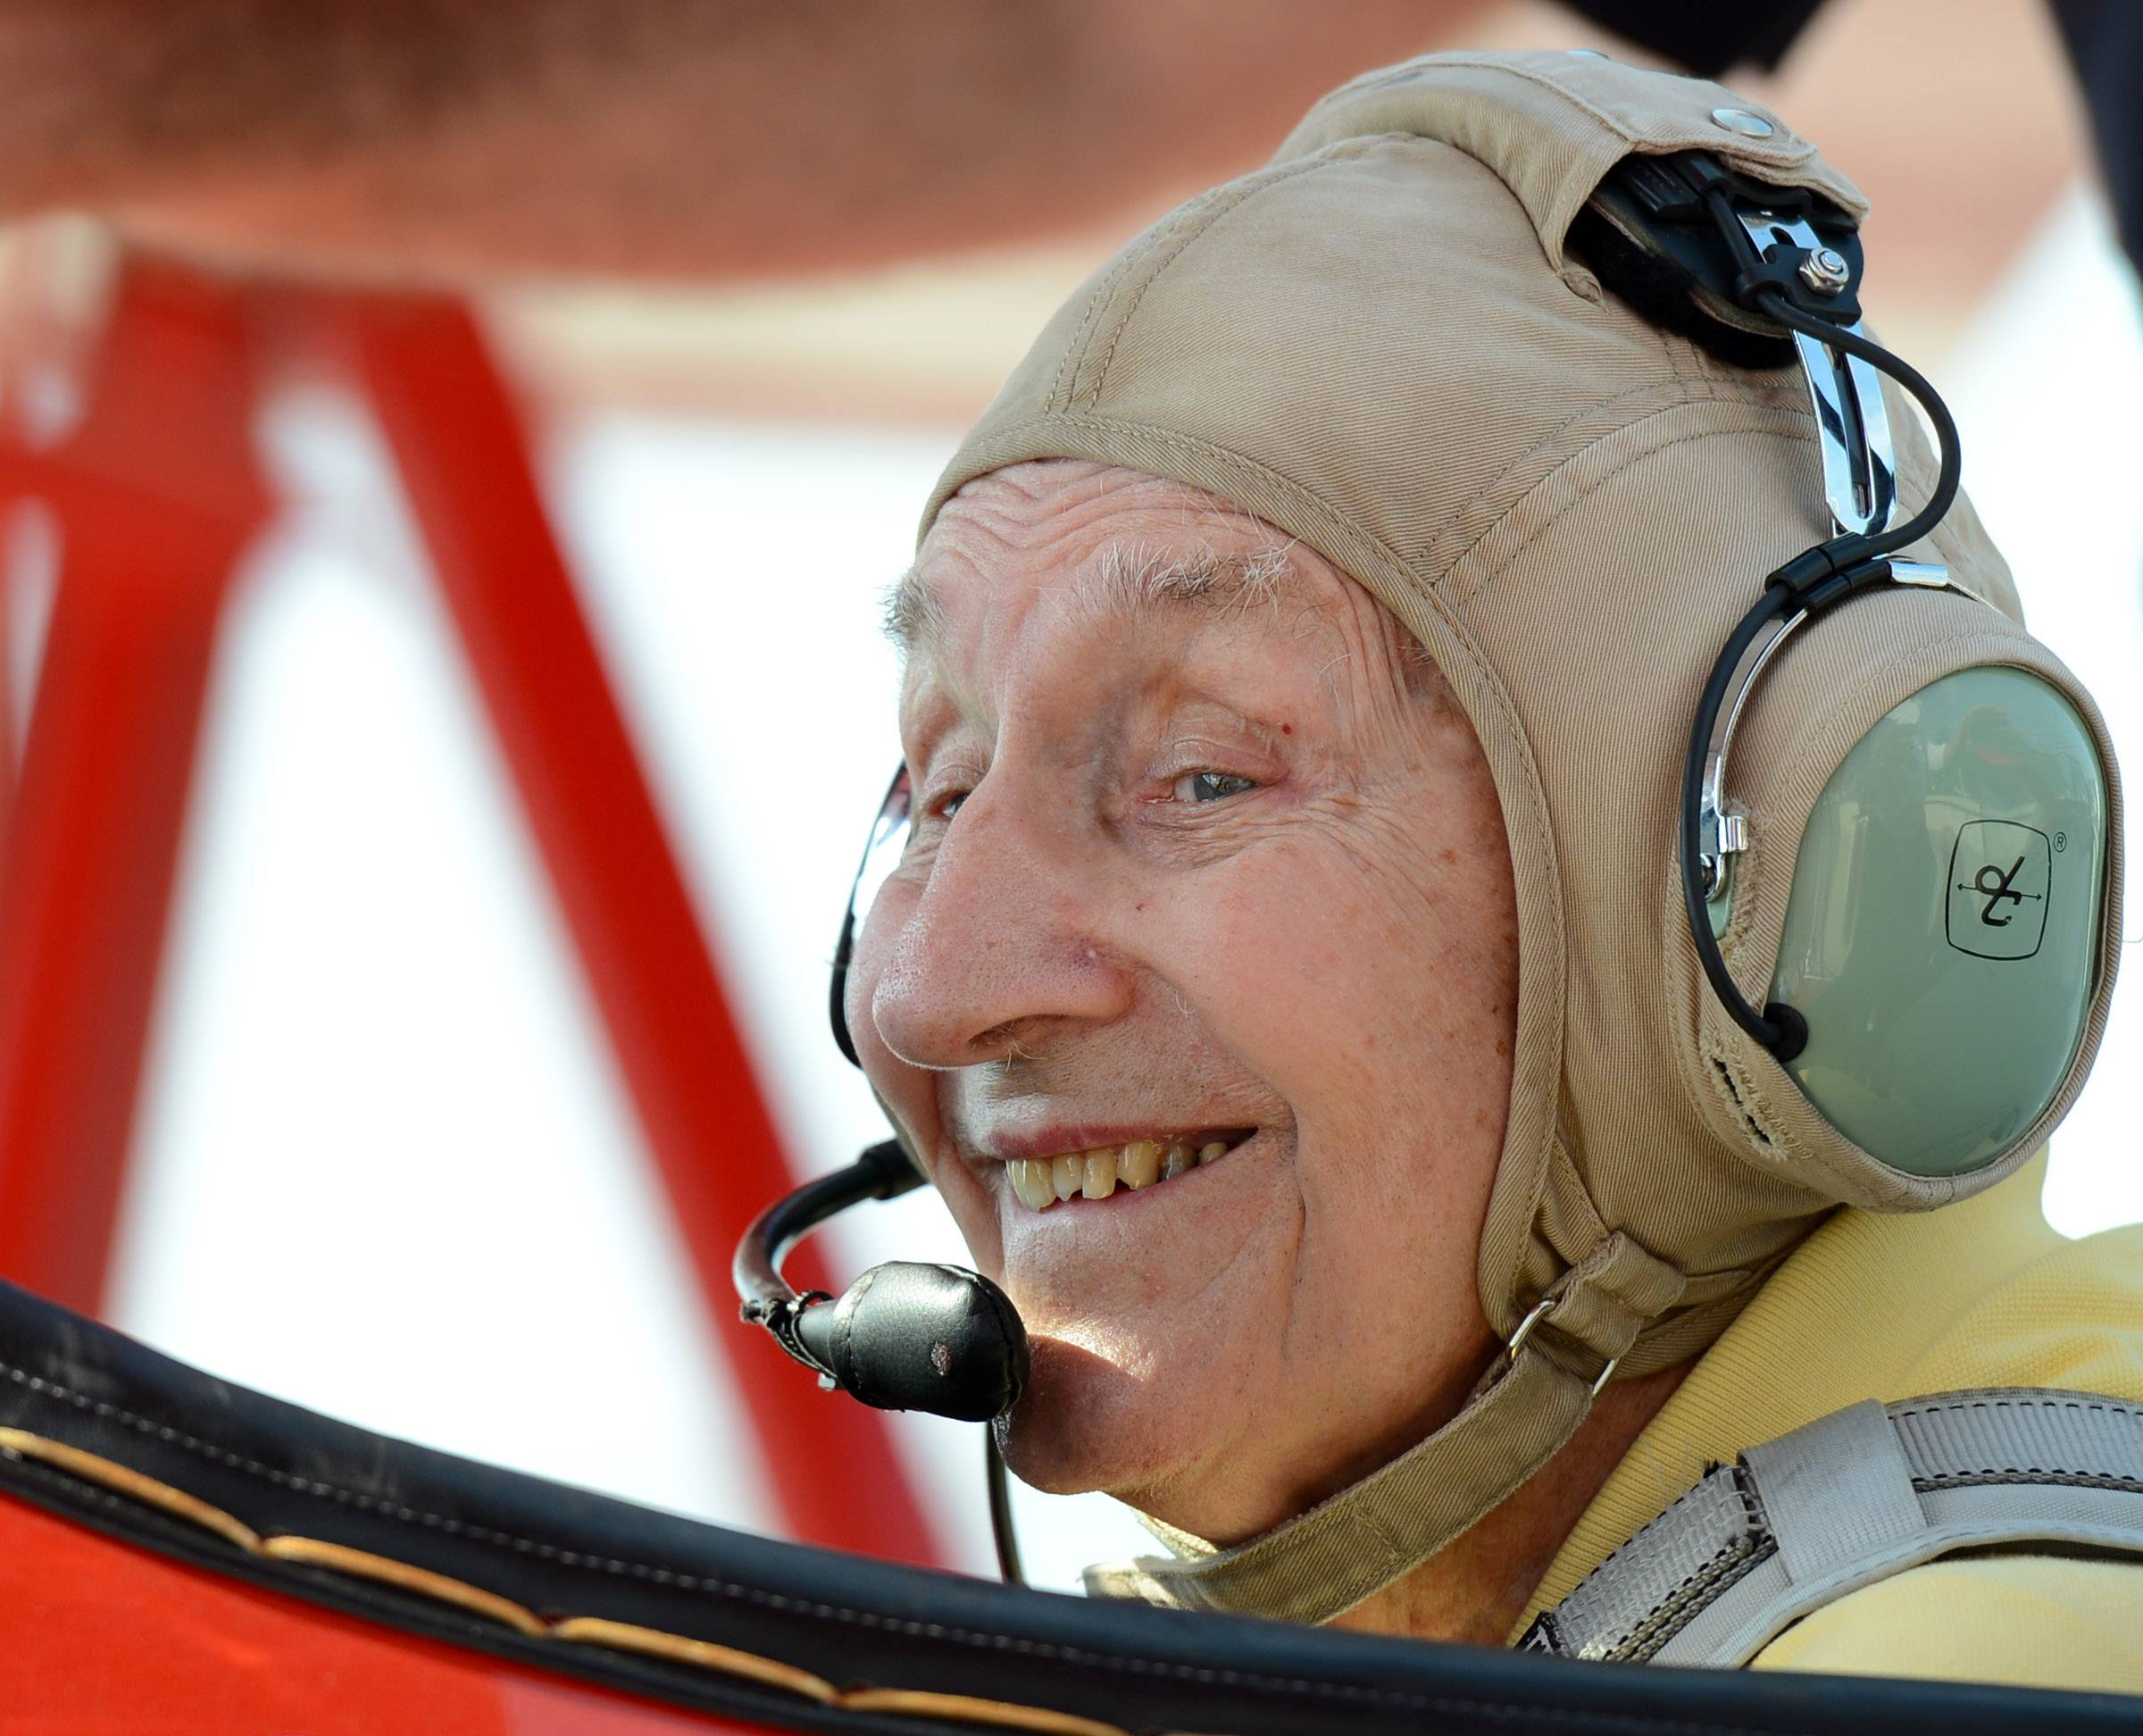 John Carlson smiles down to his wife Dorothy from a WWII-era biplane at the DuPage County Airport Tuesday. Carlson, 90, joined seven other veterans from The Holmstad retirement community as they got a chance to fly flights offered by the Ageless Aviation Dreams Foundation.